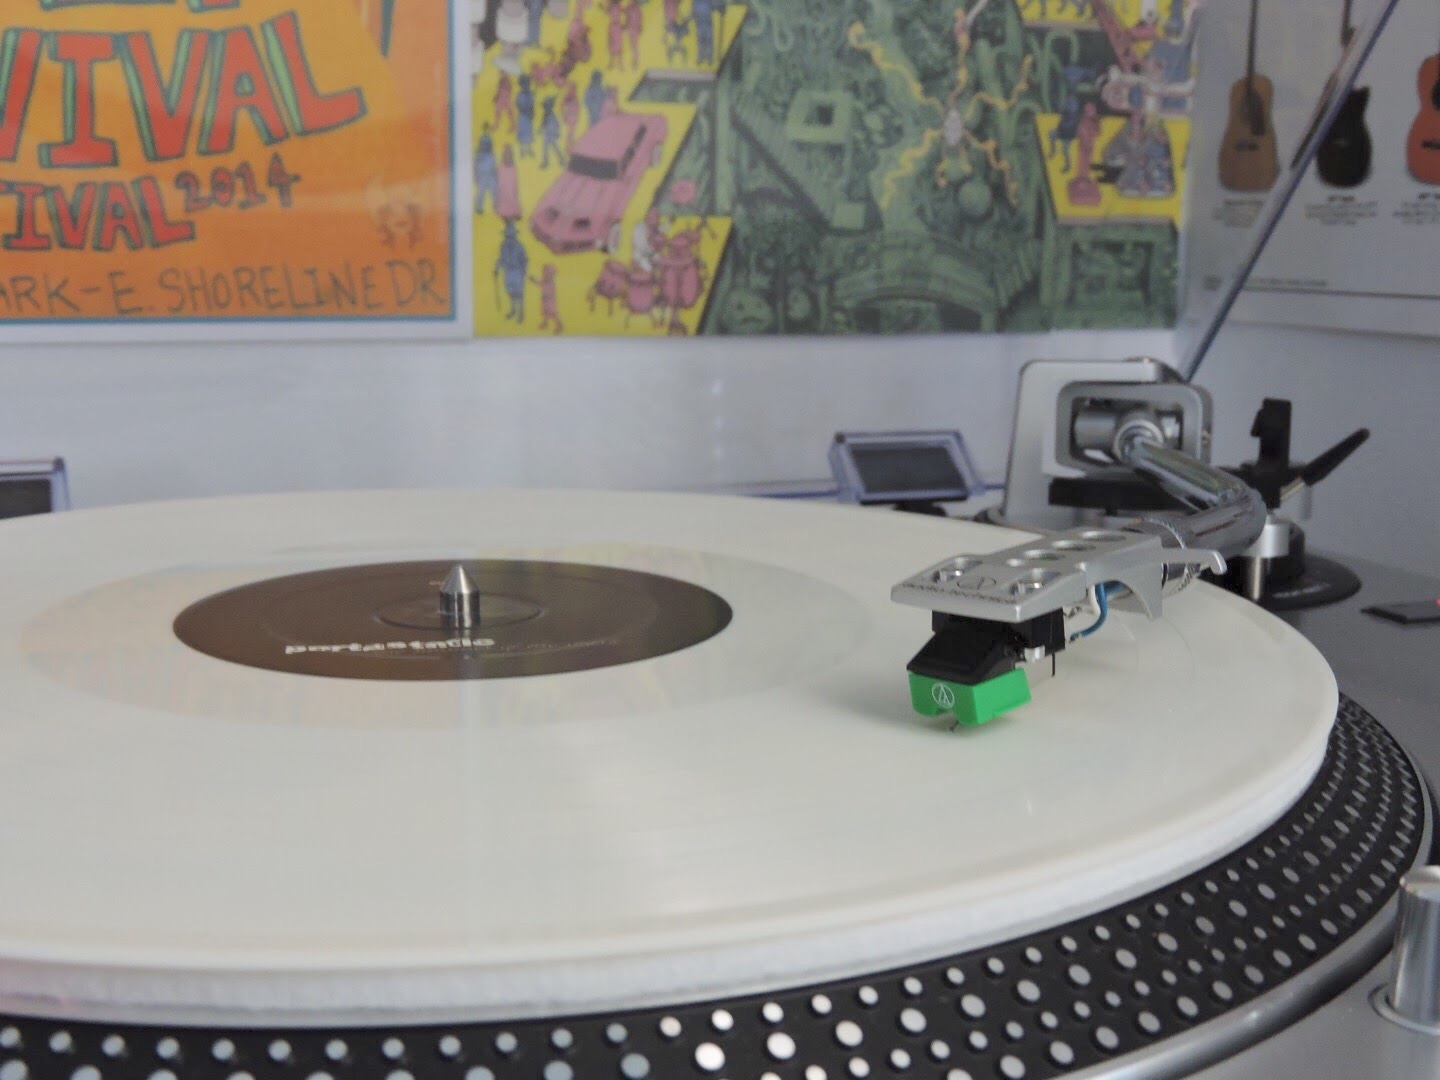 An Introduction to Record Collecting - February 11, 2018